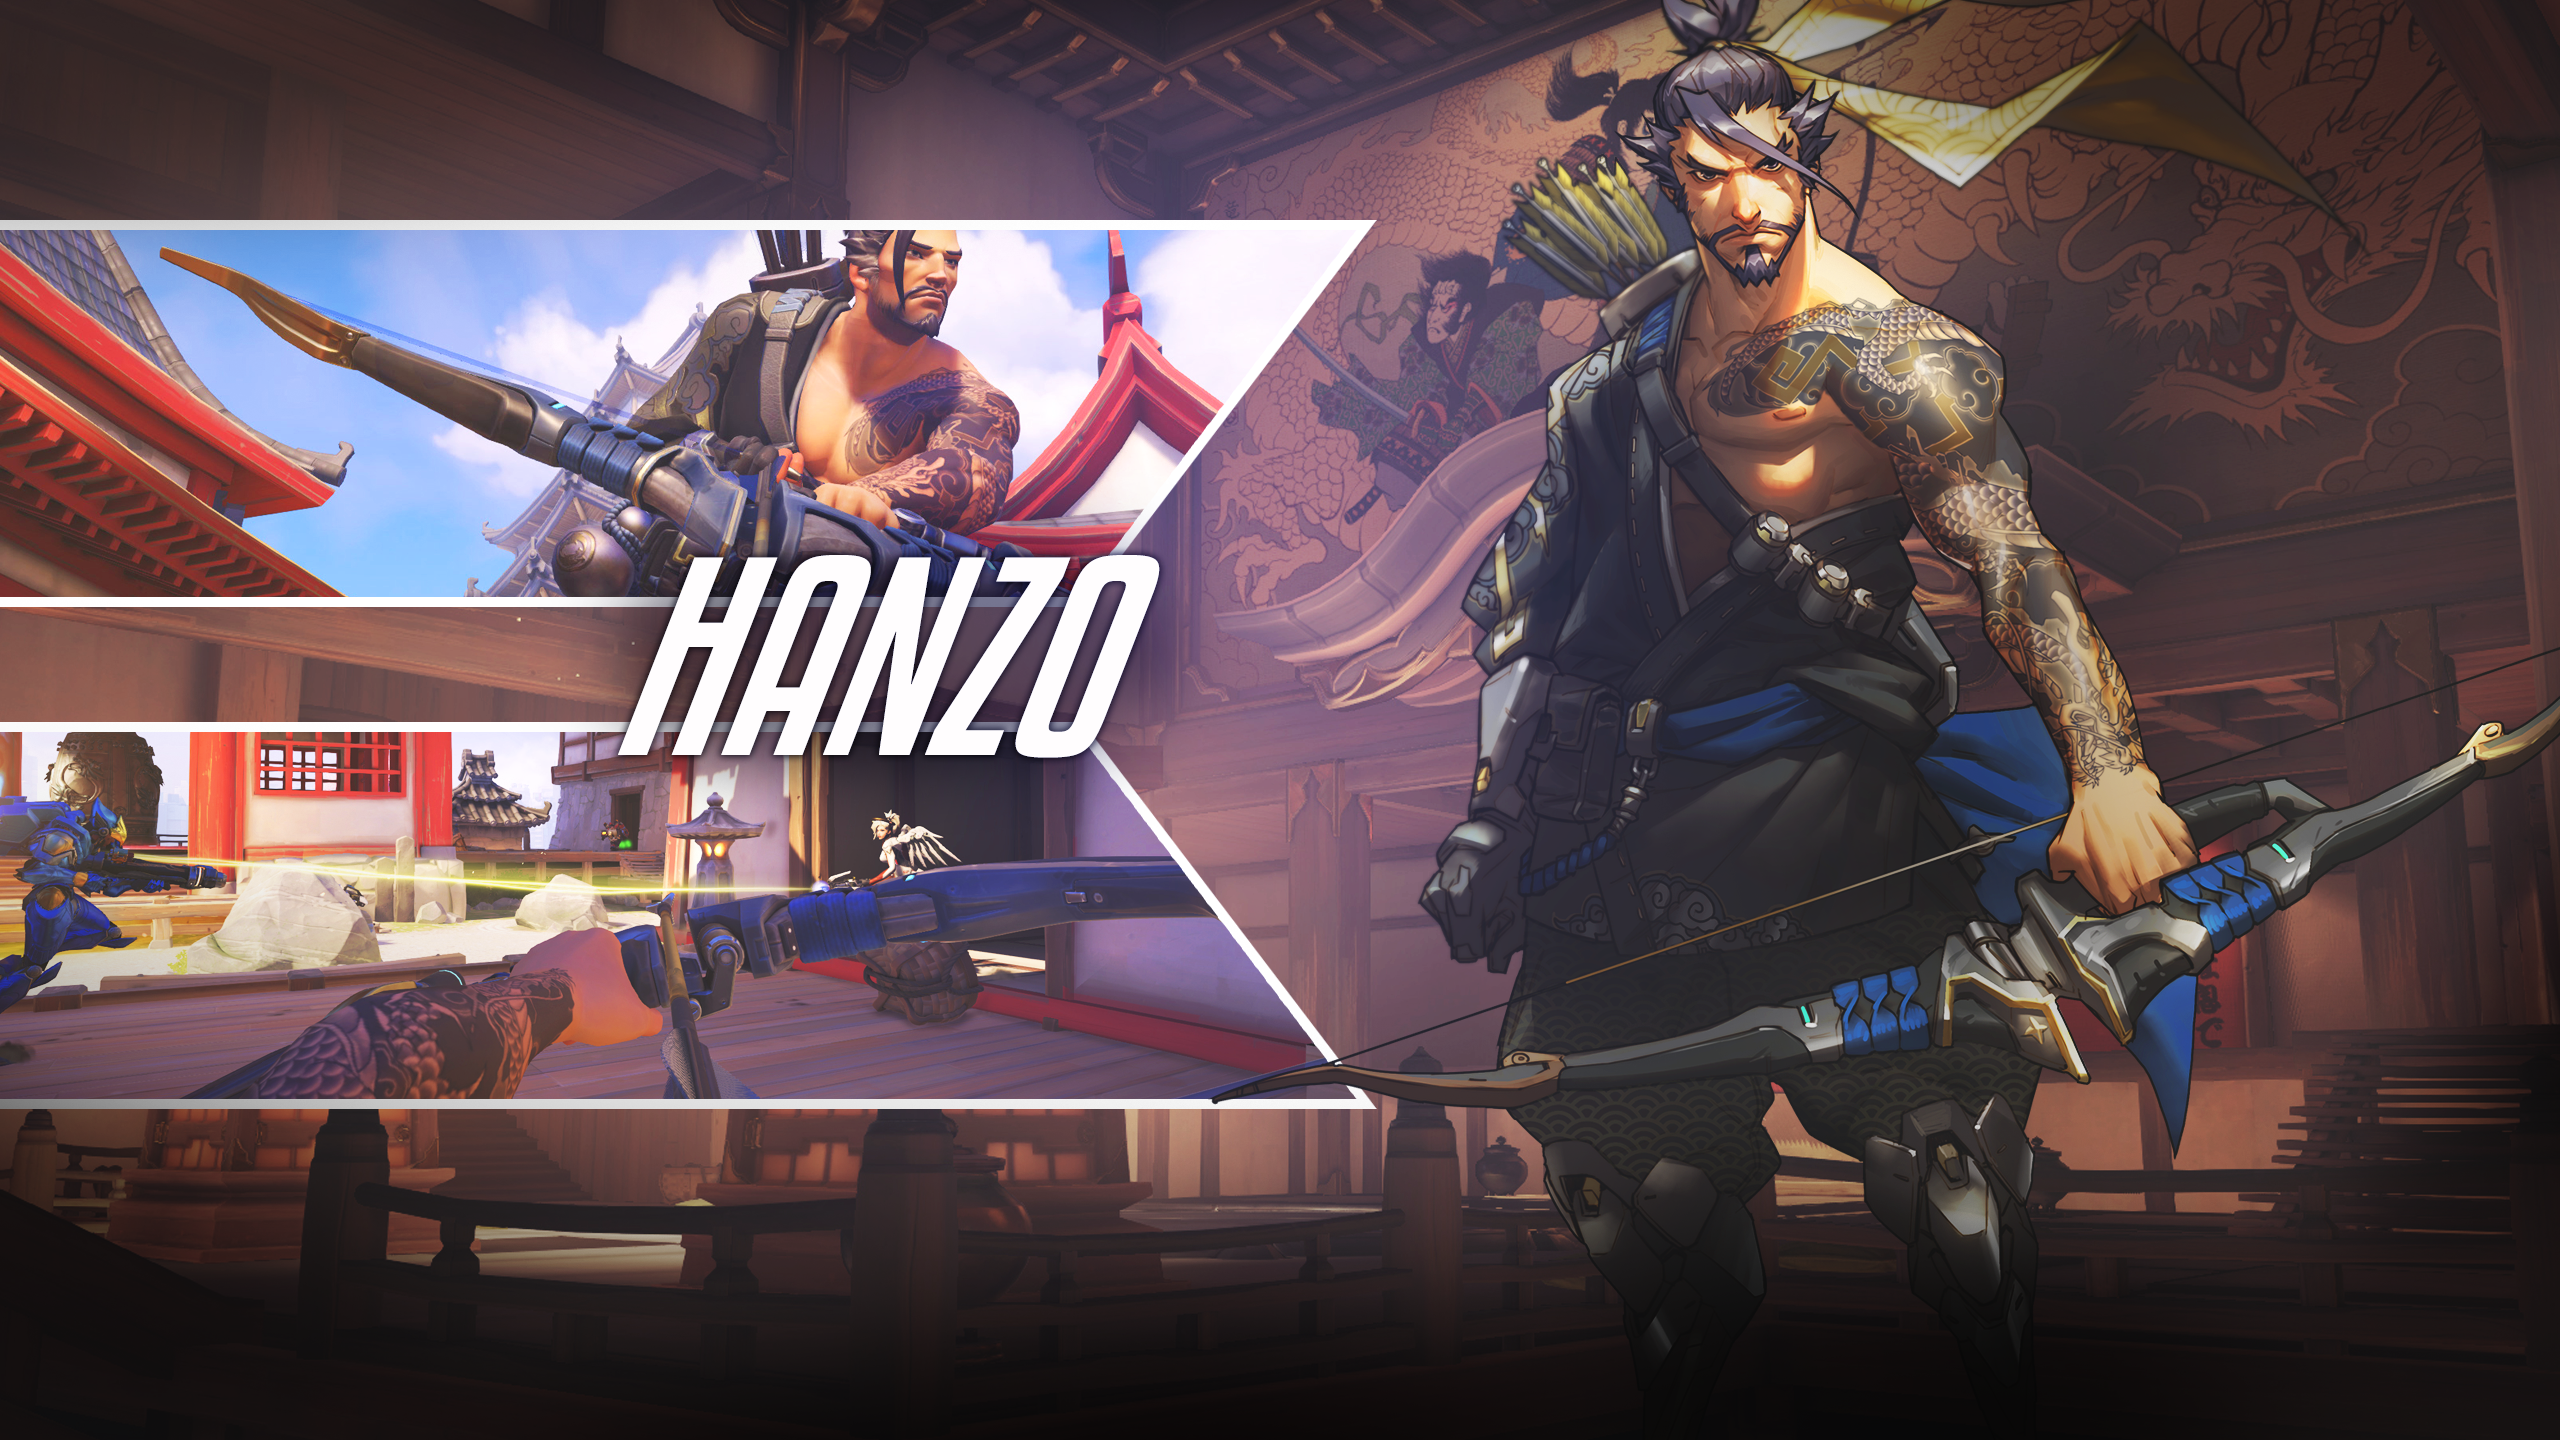 overwatch full hd wallpaper and background | 2560x1440 | id:704112